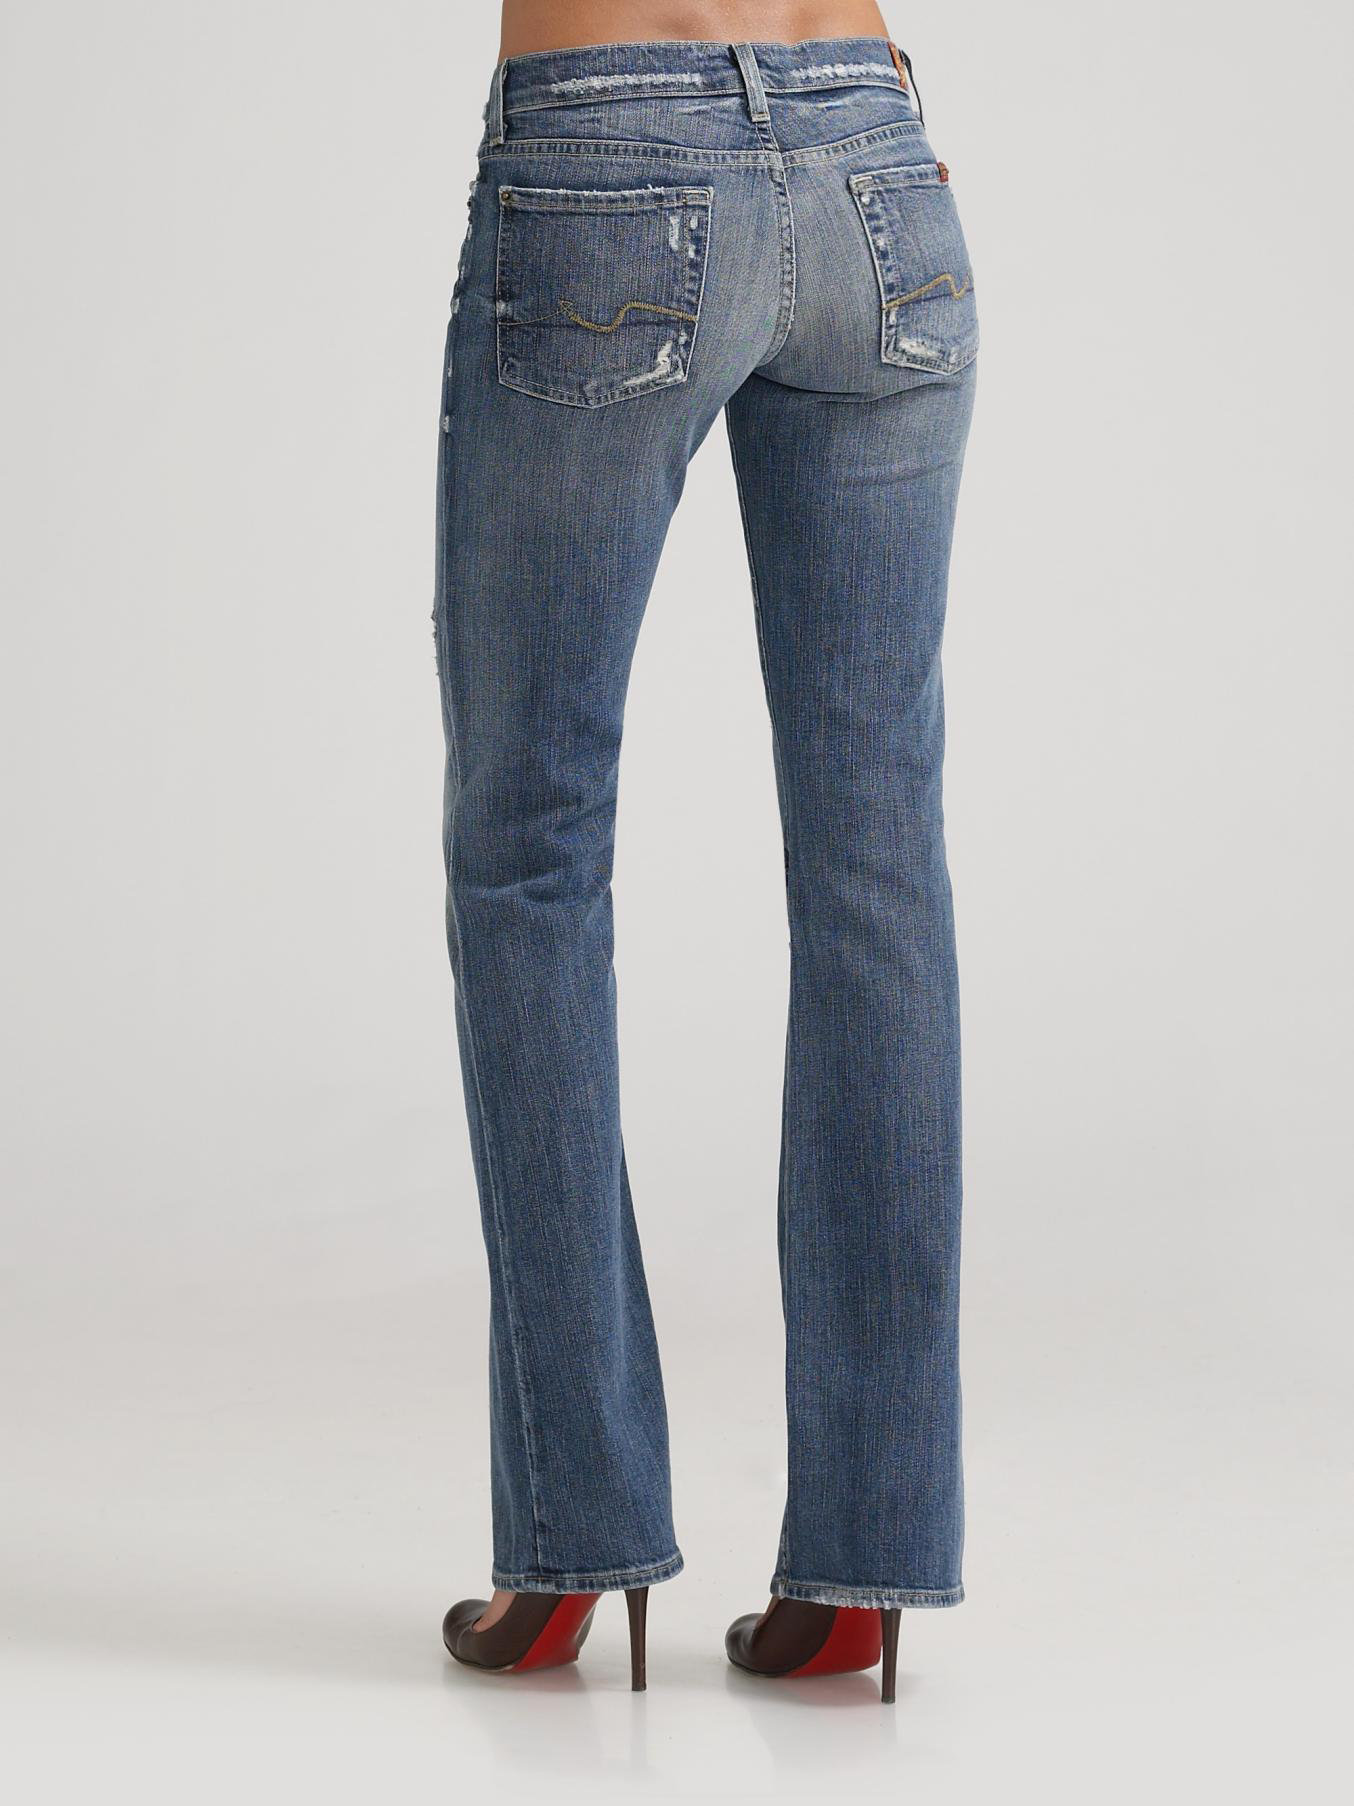 7 for all mankind Distressed Bootcut Jeans in Blue | Lyst